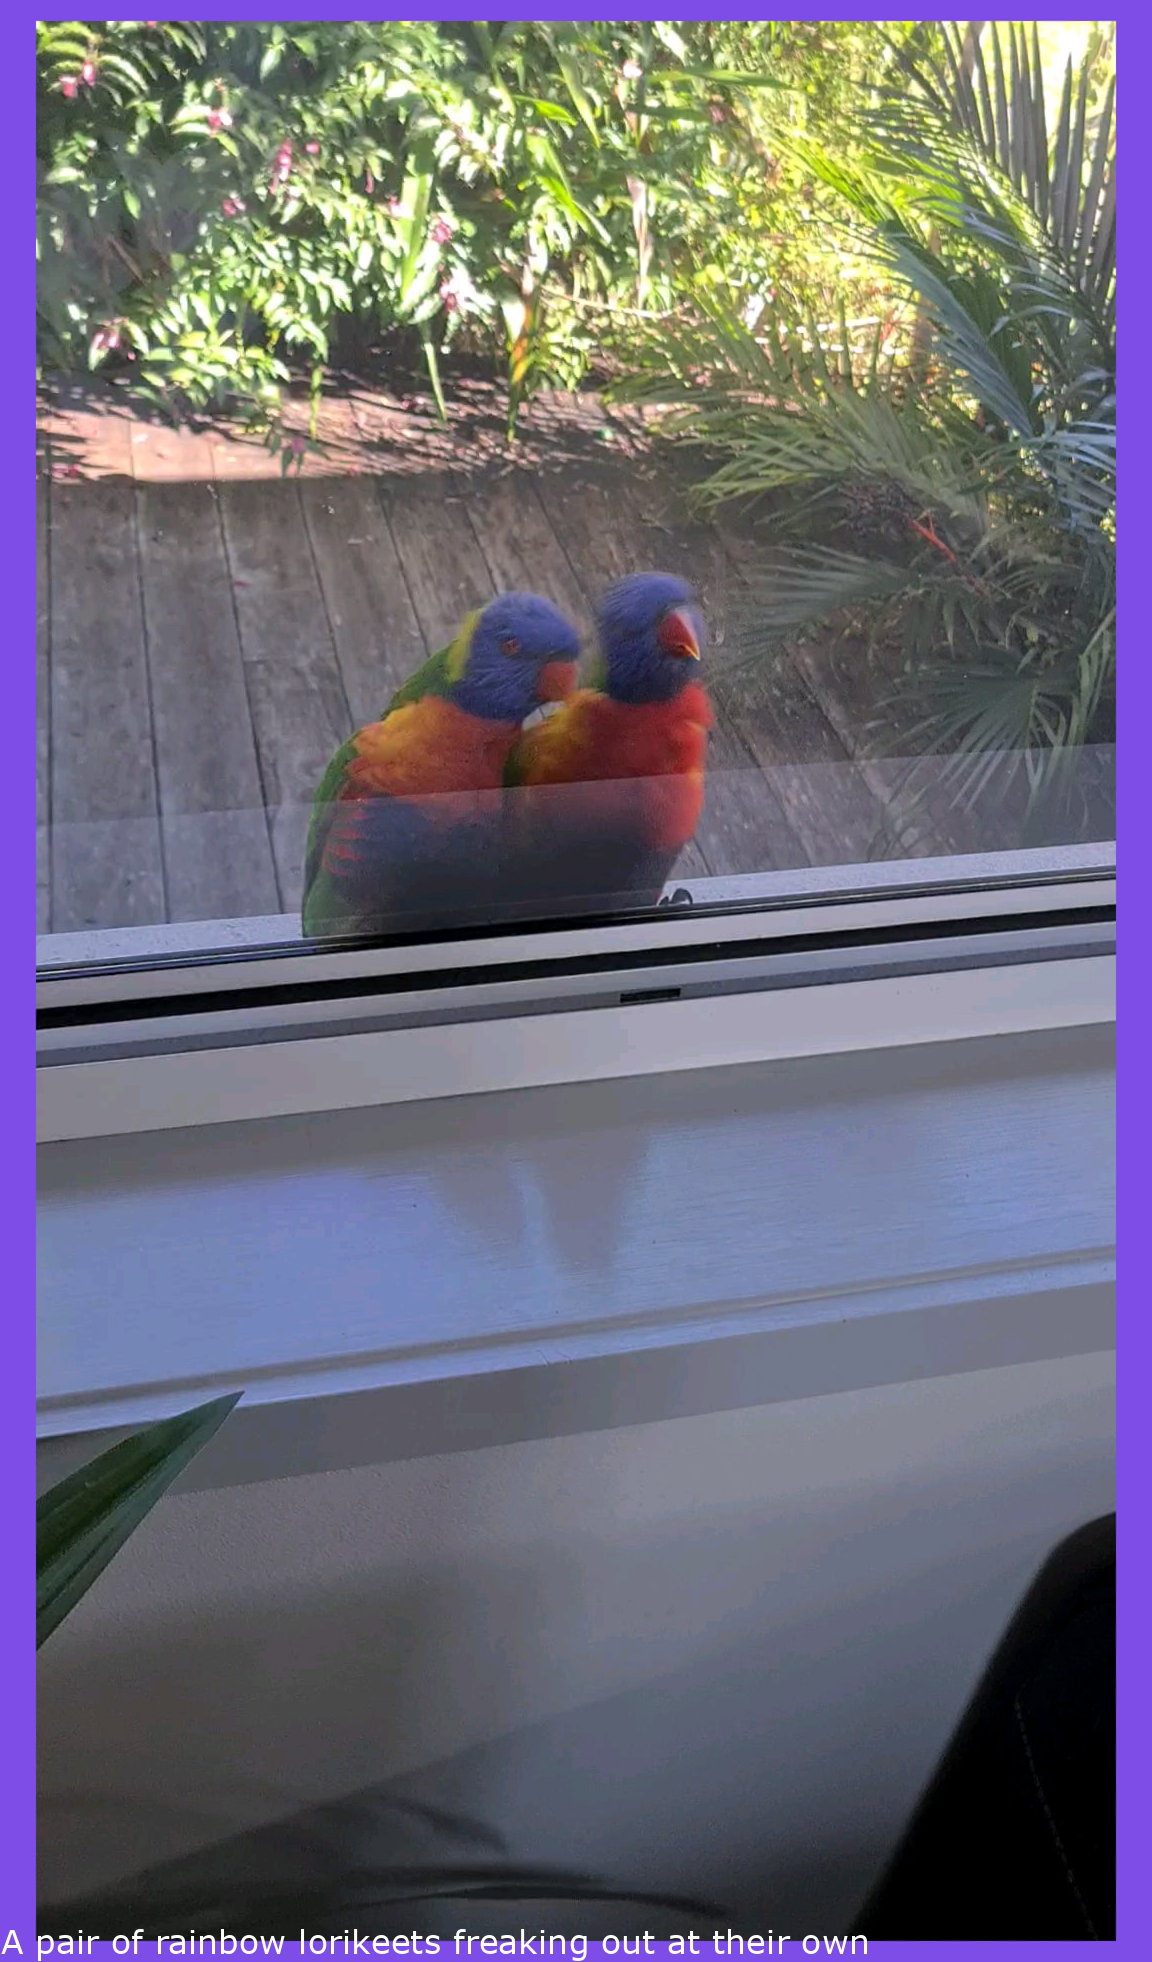 A pair of rainbow lorikeets freaking out at their own reflections